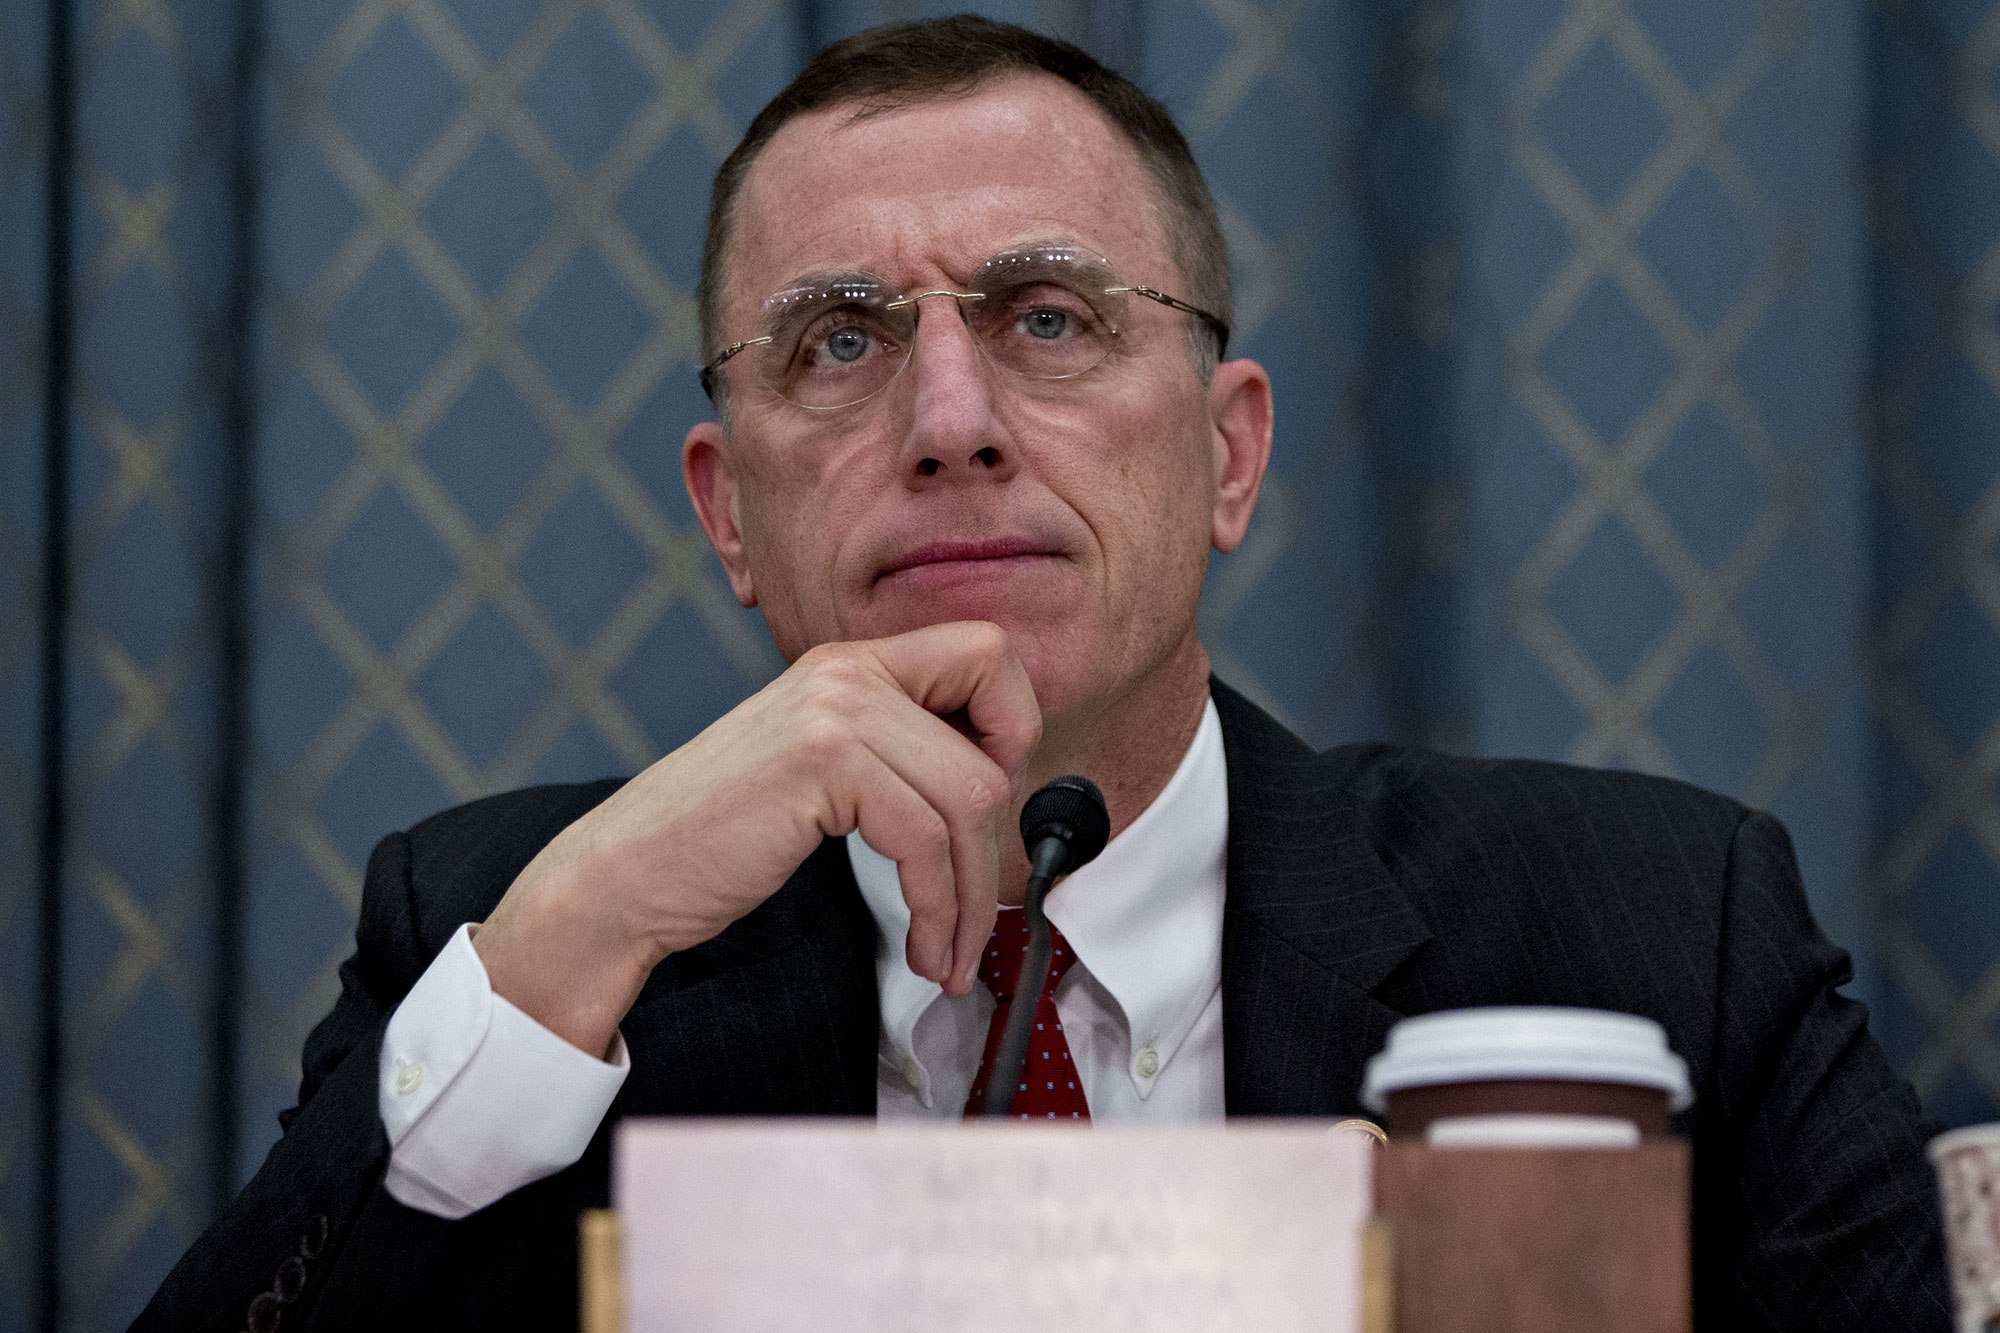 Embattled GOP Rep. Tim Murphy to resign from House